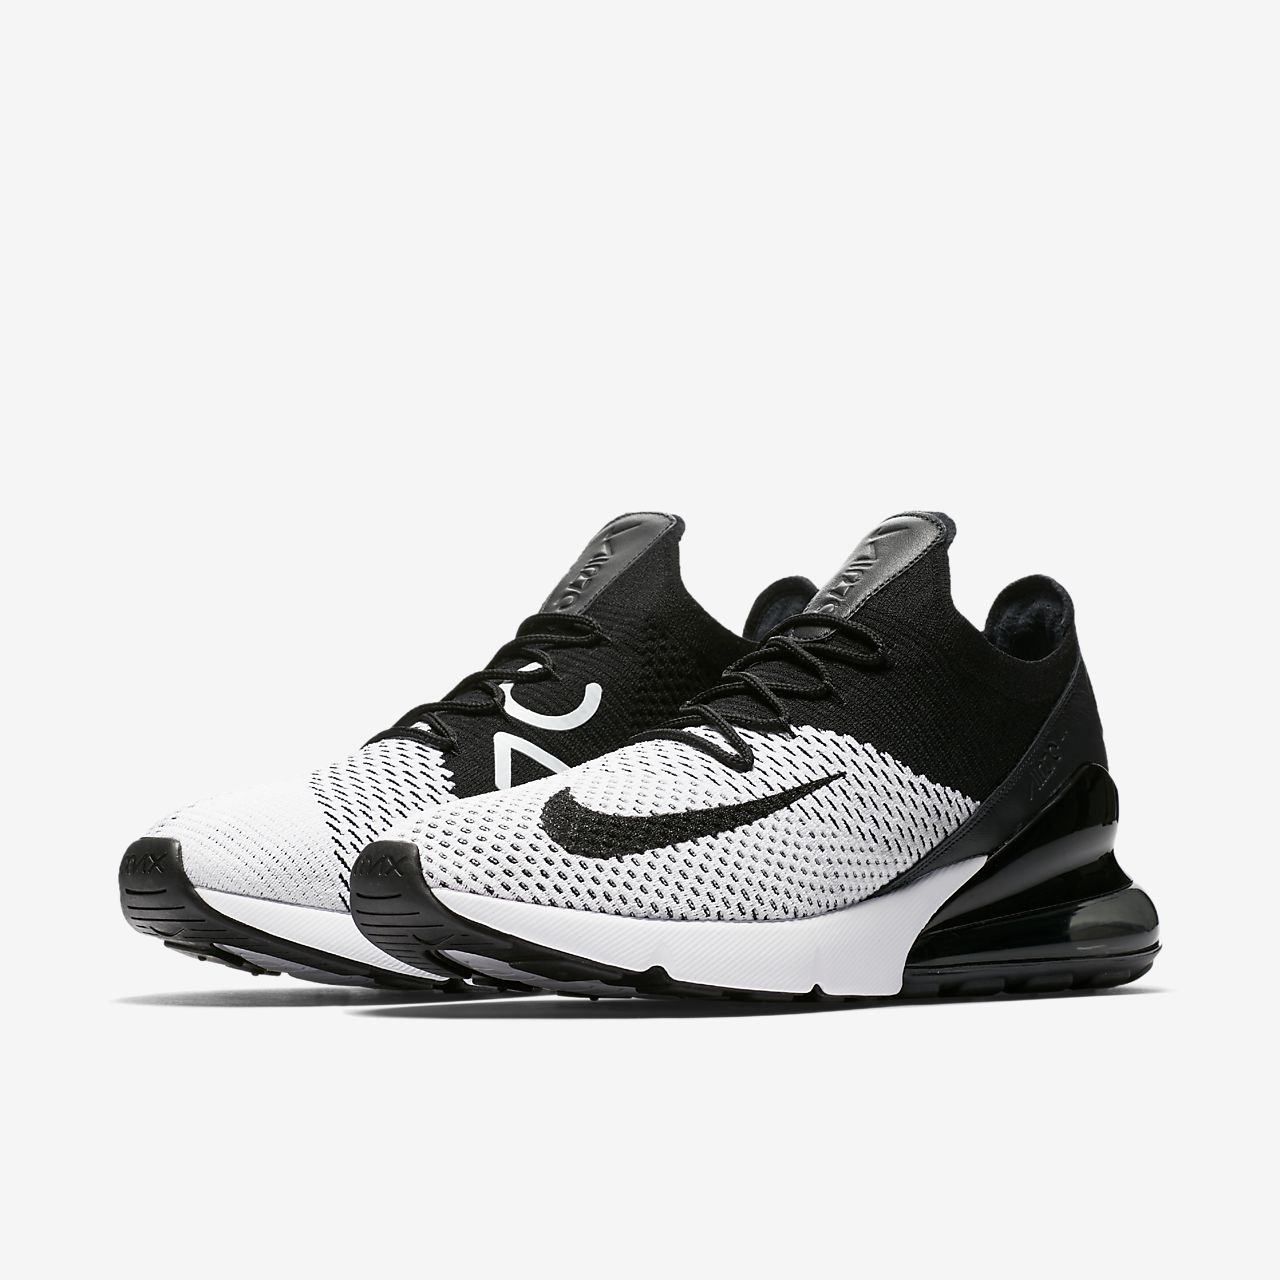 ... Chaussure Nike Air Max 270 Flyknit pour Homme